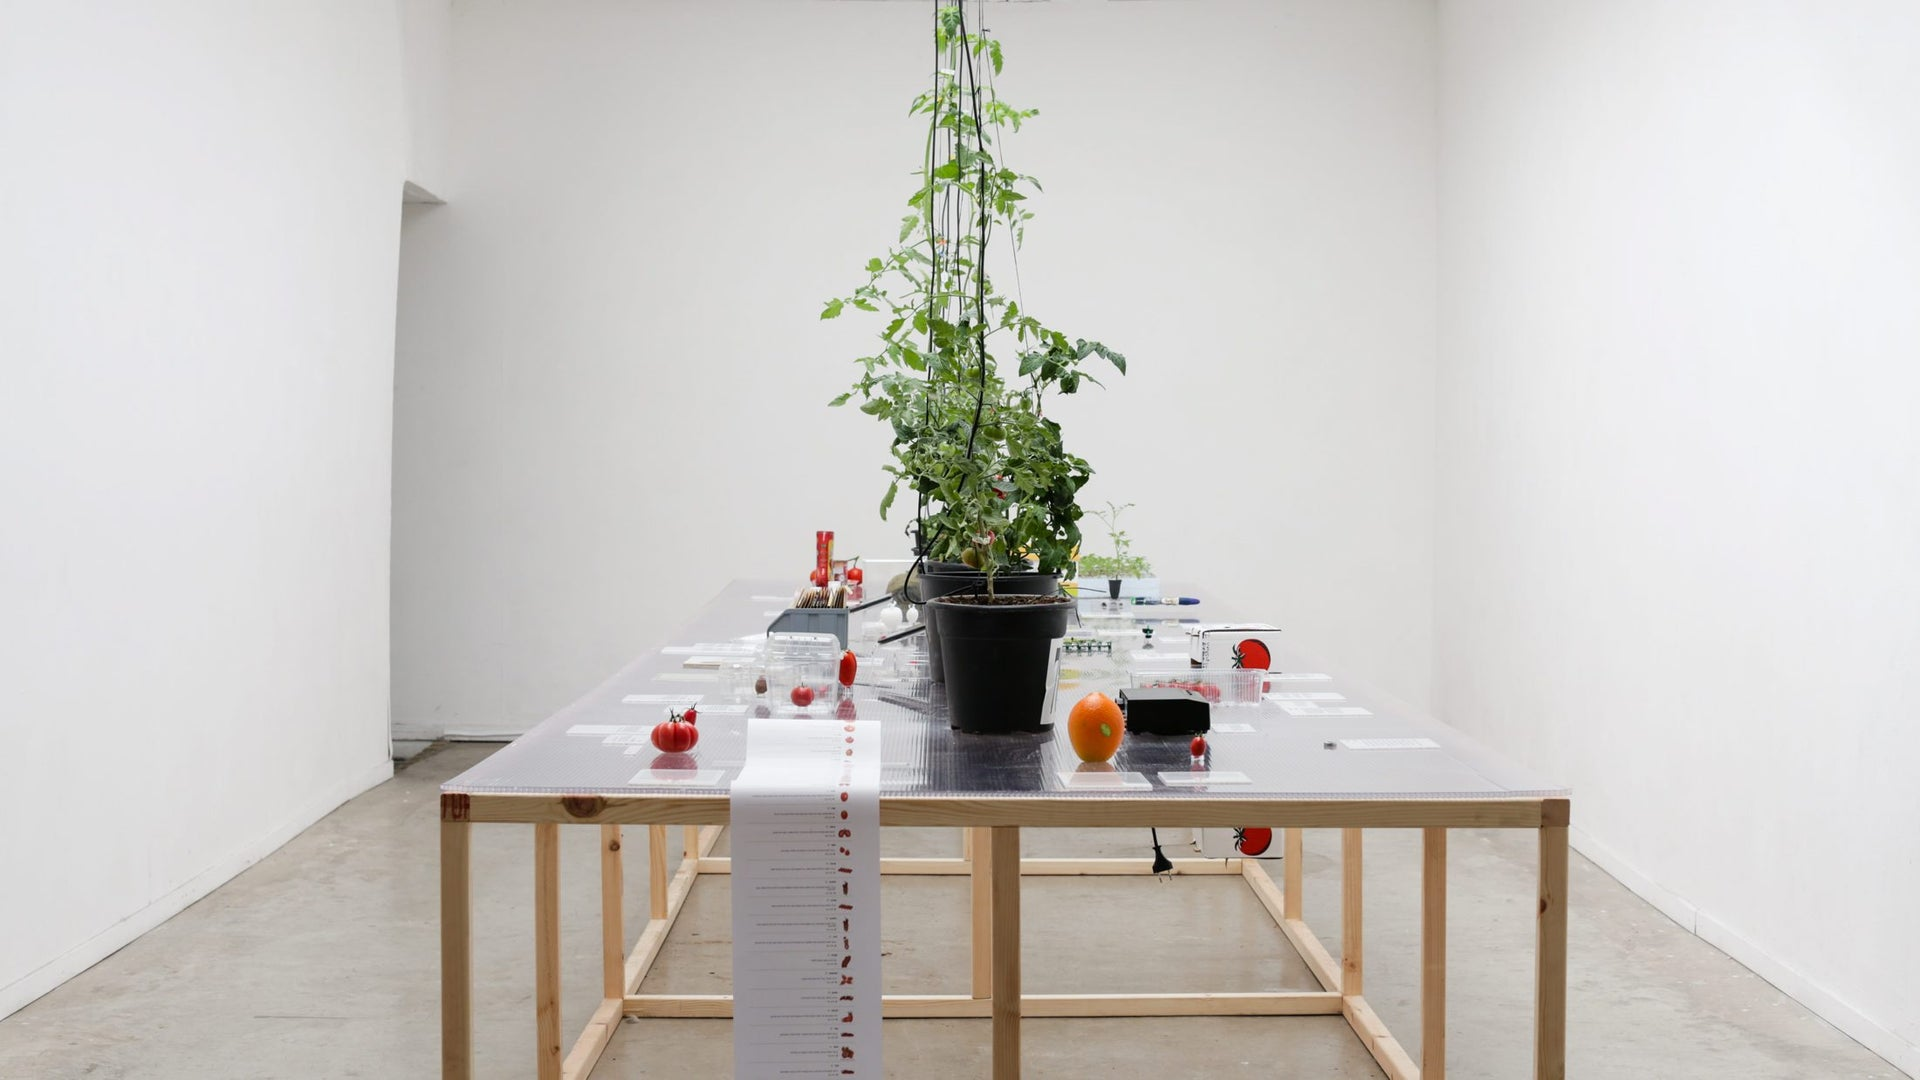 """Cherry tomatoes and tomato products on display as part of """"4 per kilo: Tomato stories."""""""